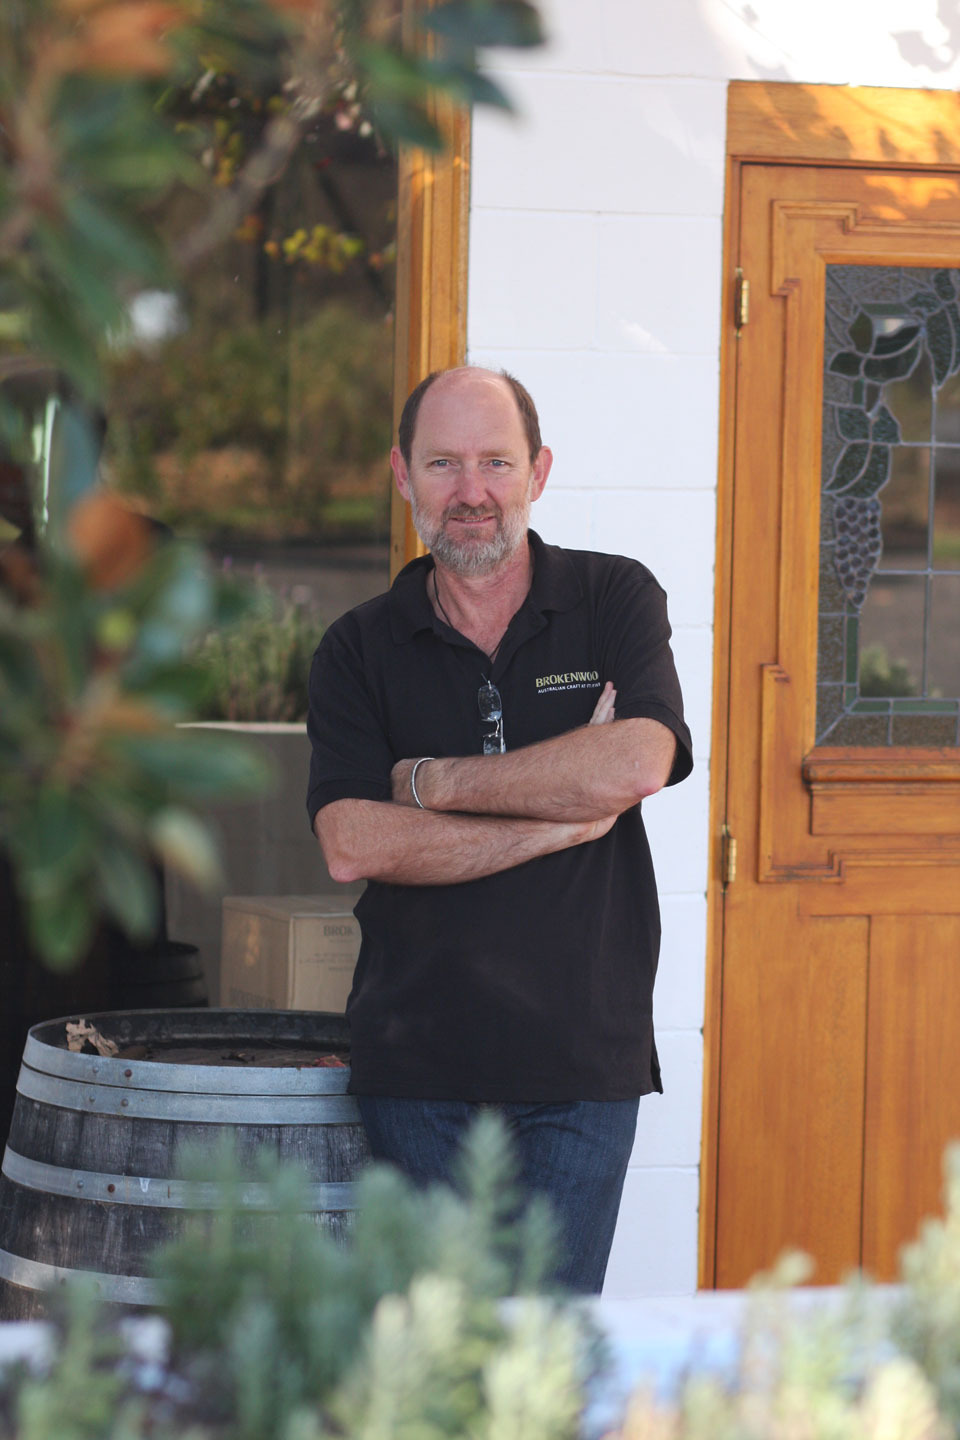 The Australian wine industry owes much to Iain Riggs' talent and determination.